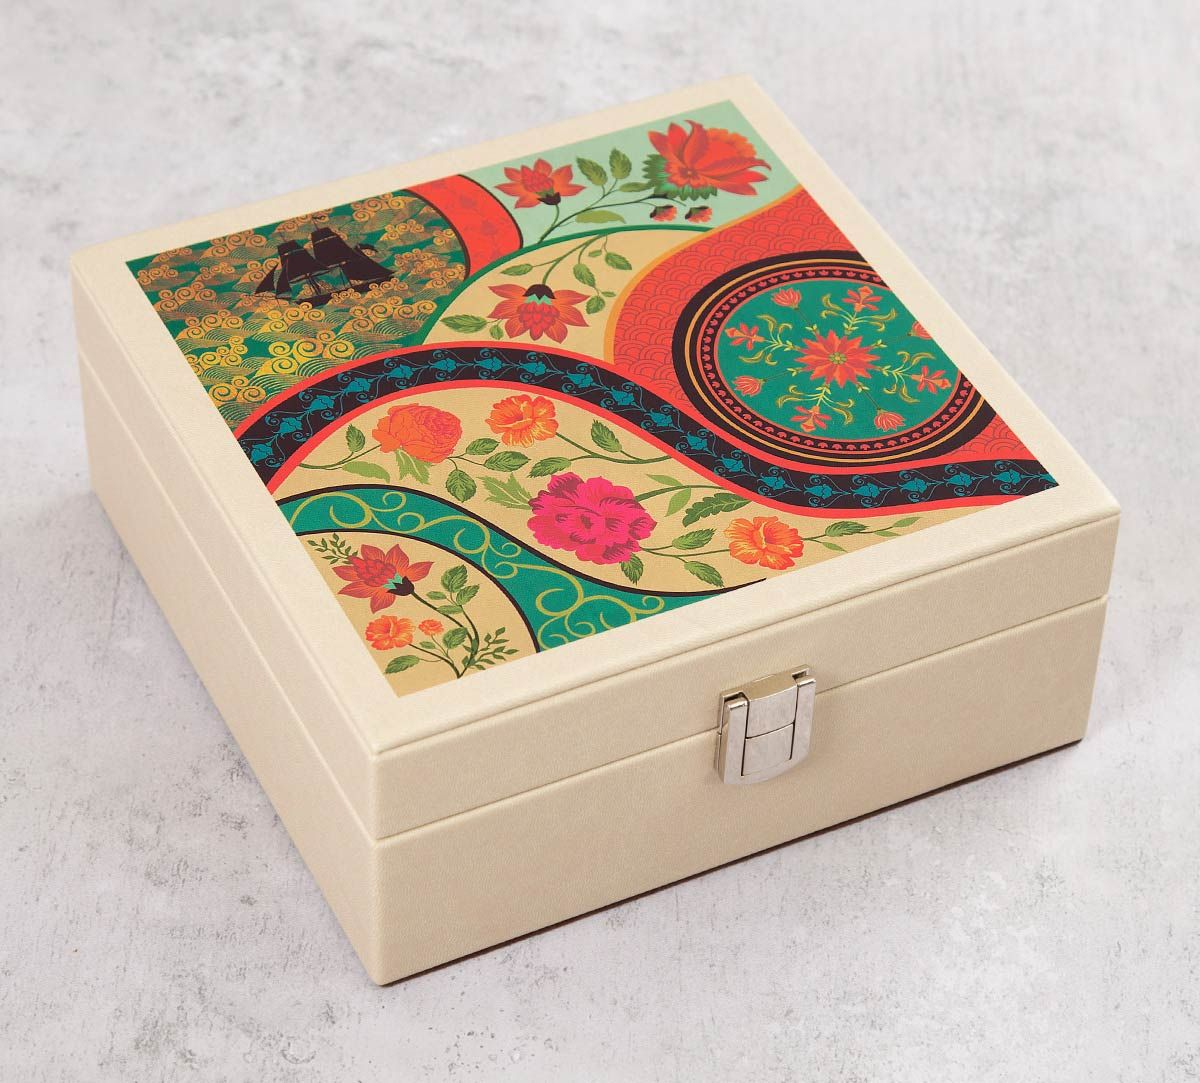 India Circus Floral Embroidery Leather Jewellery Box